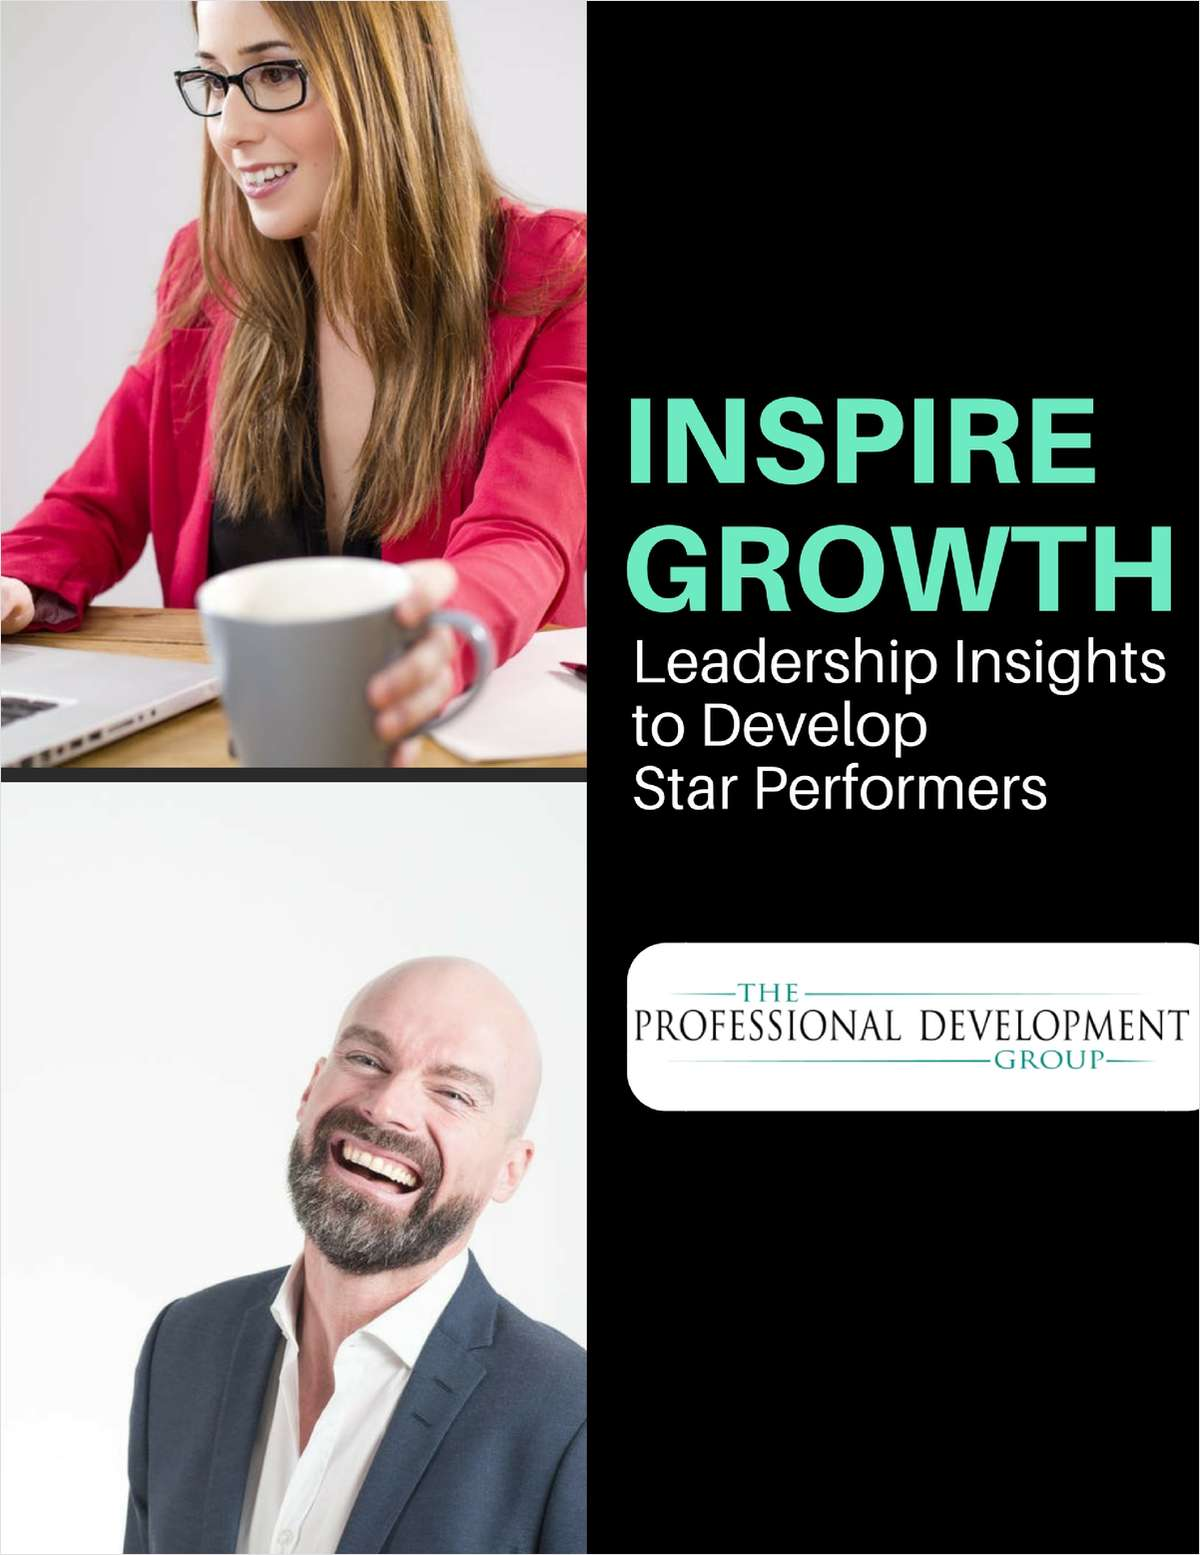 Inspire Growth - Leadership Insights to Develop Star Performers